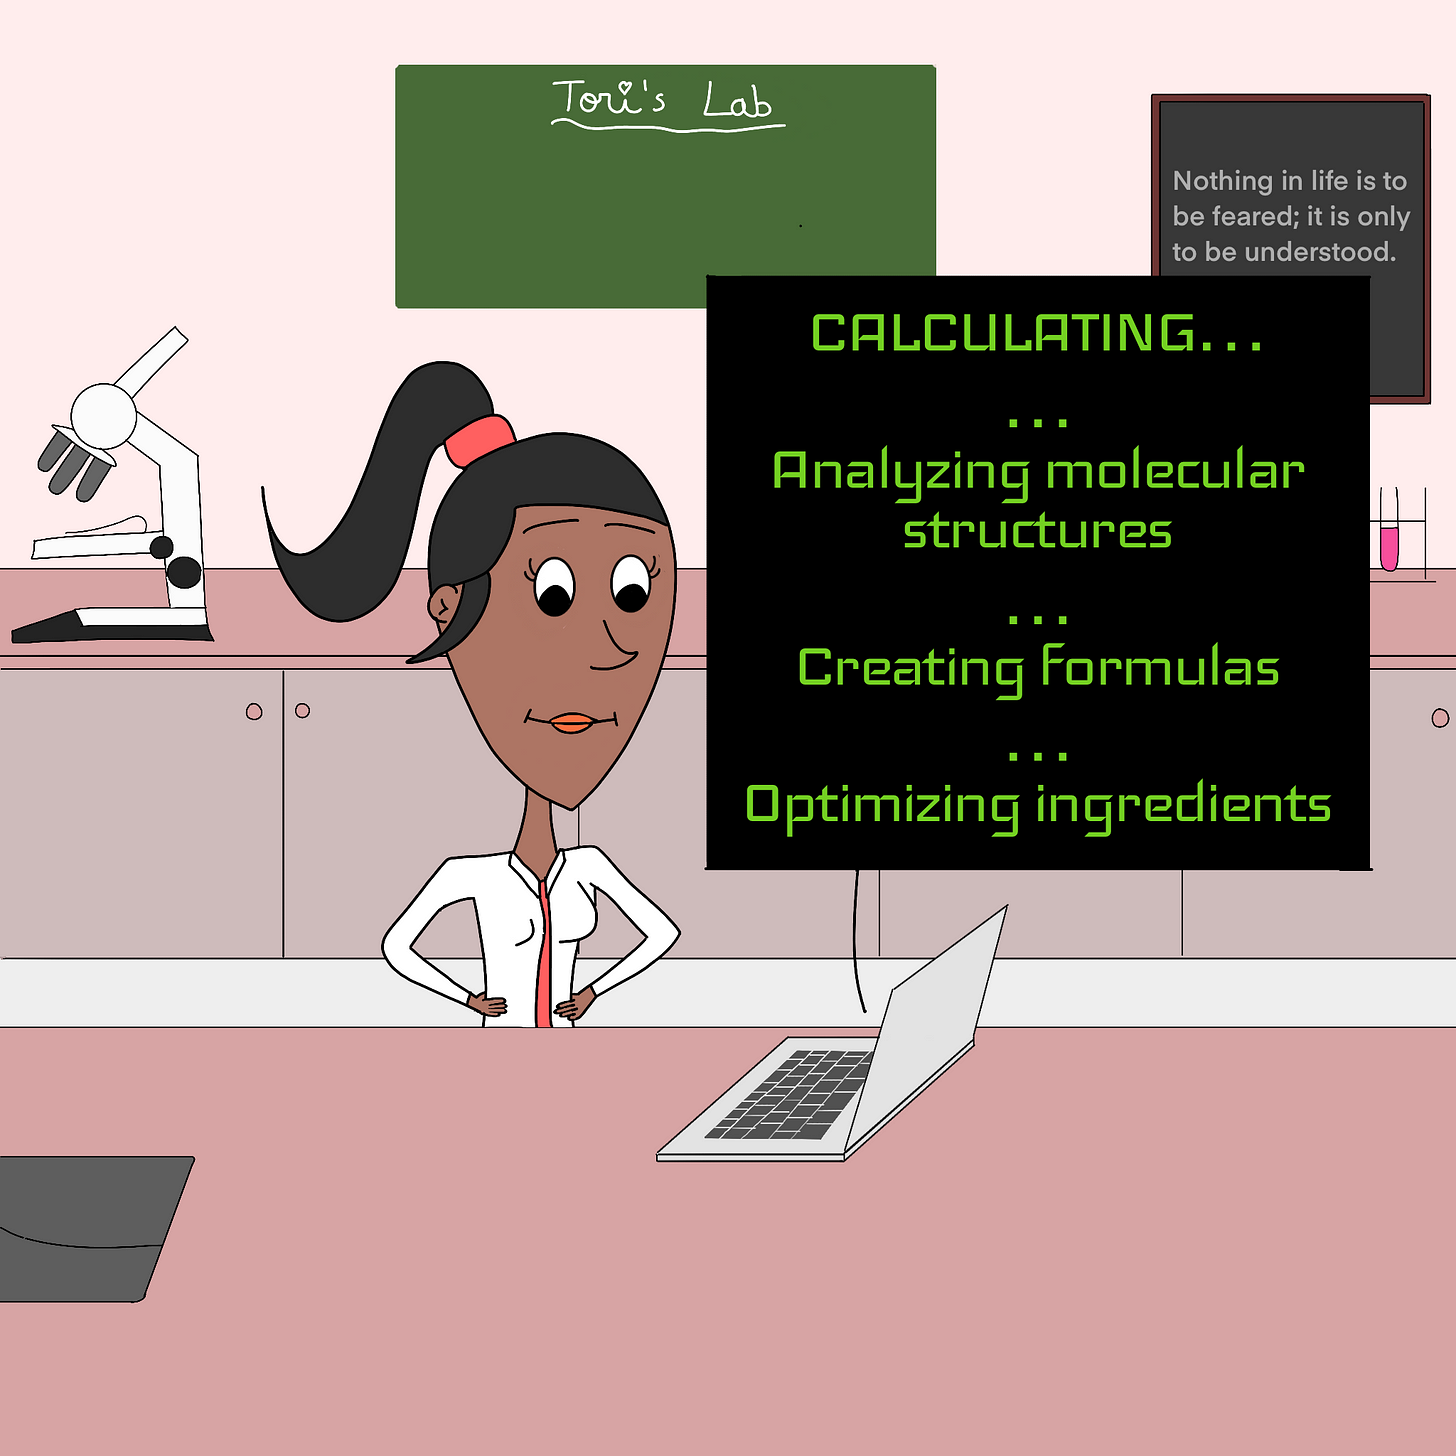 """Panel 3: The Giuseppe algorithm starts working and executing multiple commands to create a recipe: """"CALCULATING... Analyzing molecular structures... Creating formulas... Optimizing ingredients"""" says Giuseppe."""